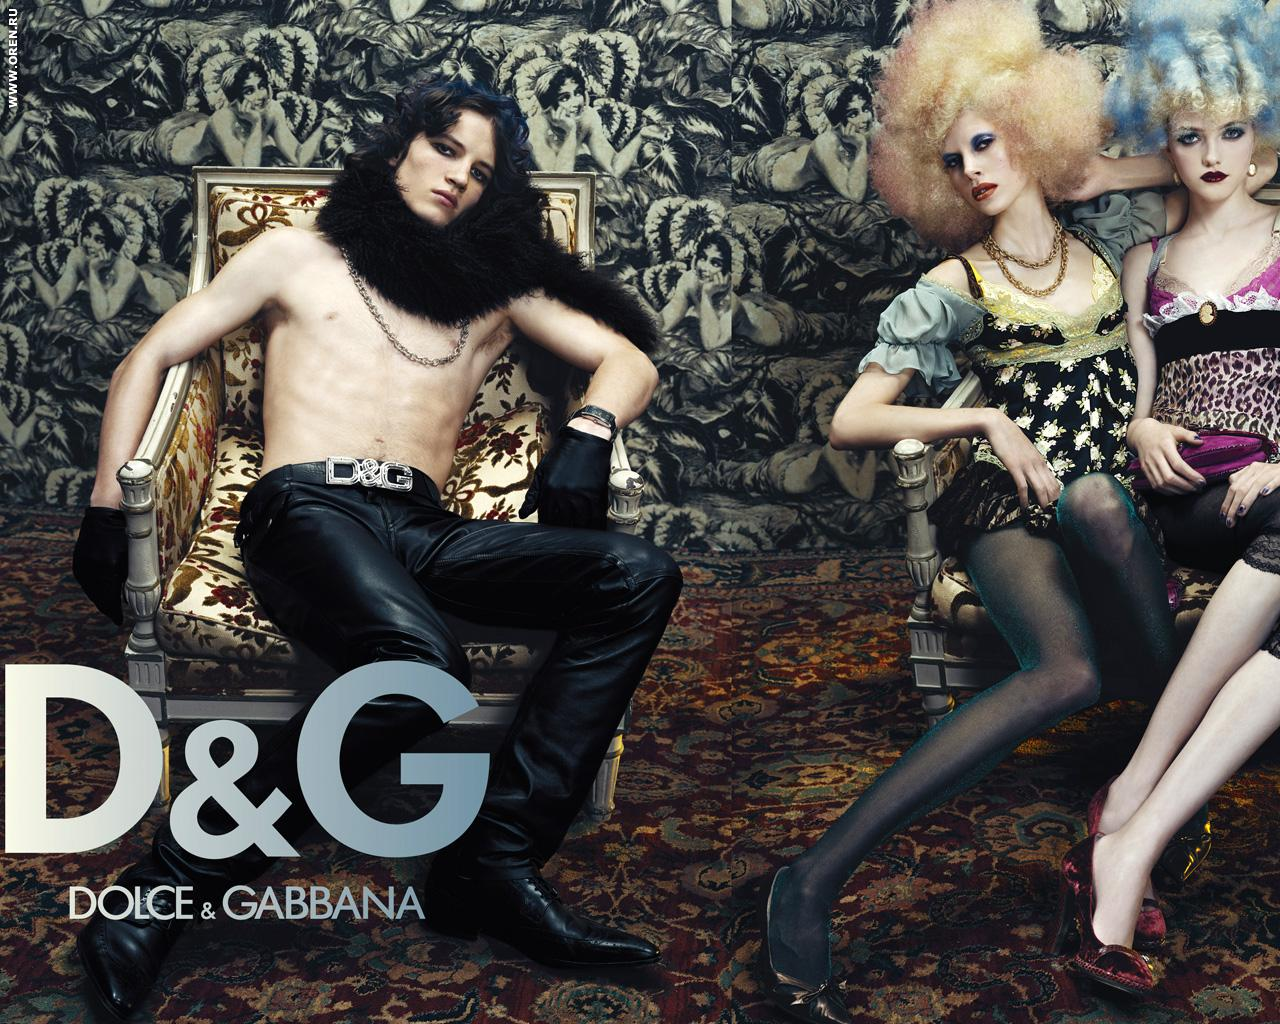 Blue.Bling.Ring: Spicy Dolce & Gabbana adverts!!!